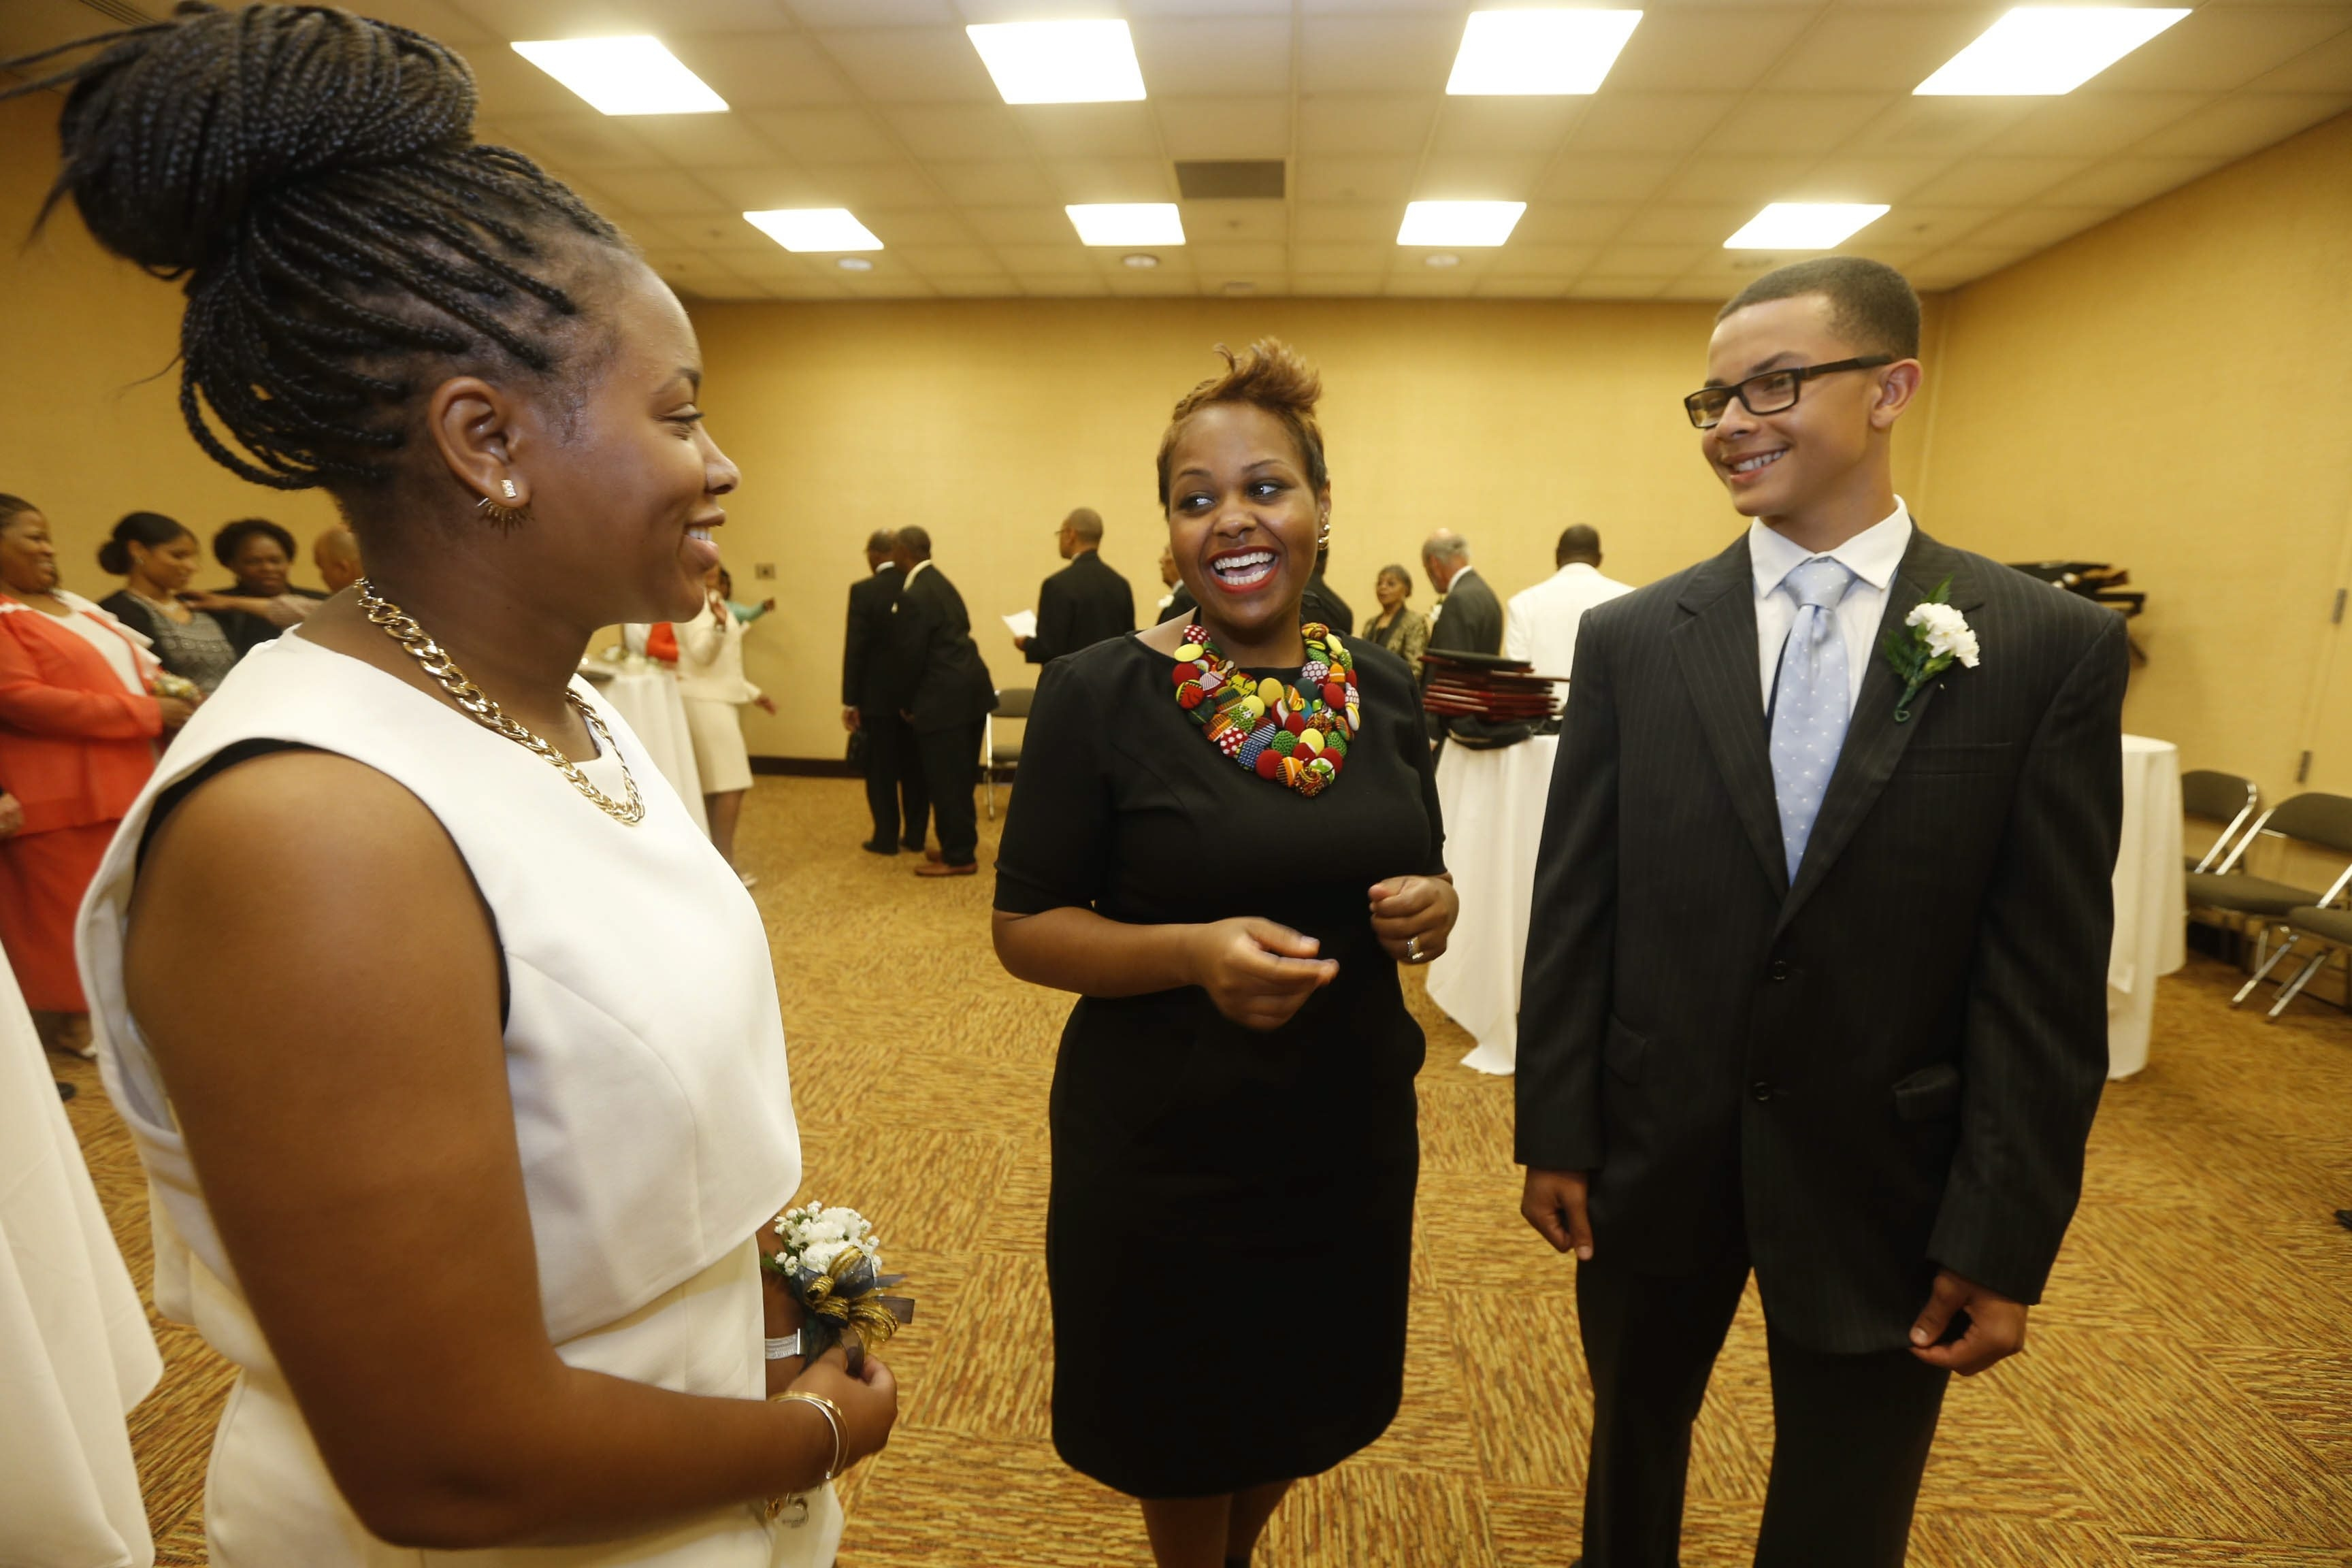 Keynote speaker Carmen Berkley, director for the Civil, Human and Women's Rights Department of the AFL-CIO, center, speaks with 2015 youth awardees Alana Leveritte, left, and Brandon Barksdale before the NAACP Buffalo dinner at the Buffalo Niagara Convention Center  Sunday, June 14, 2015.  (Robert Kirkham/Buffalo News)